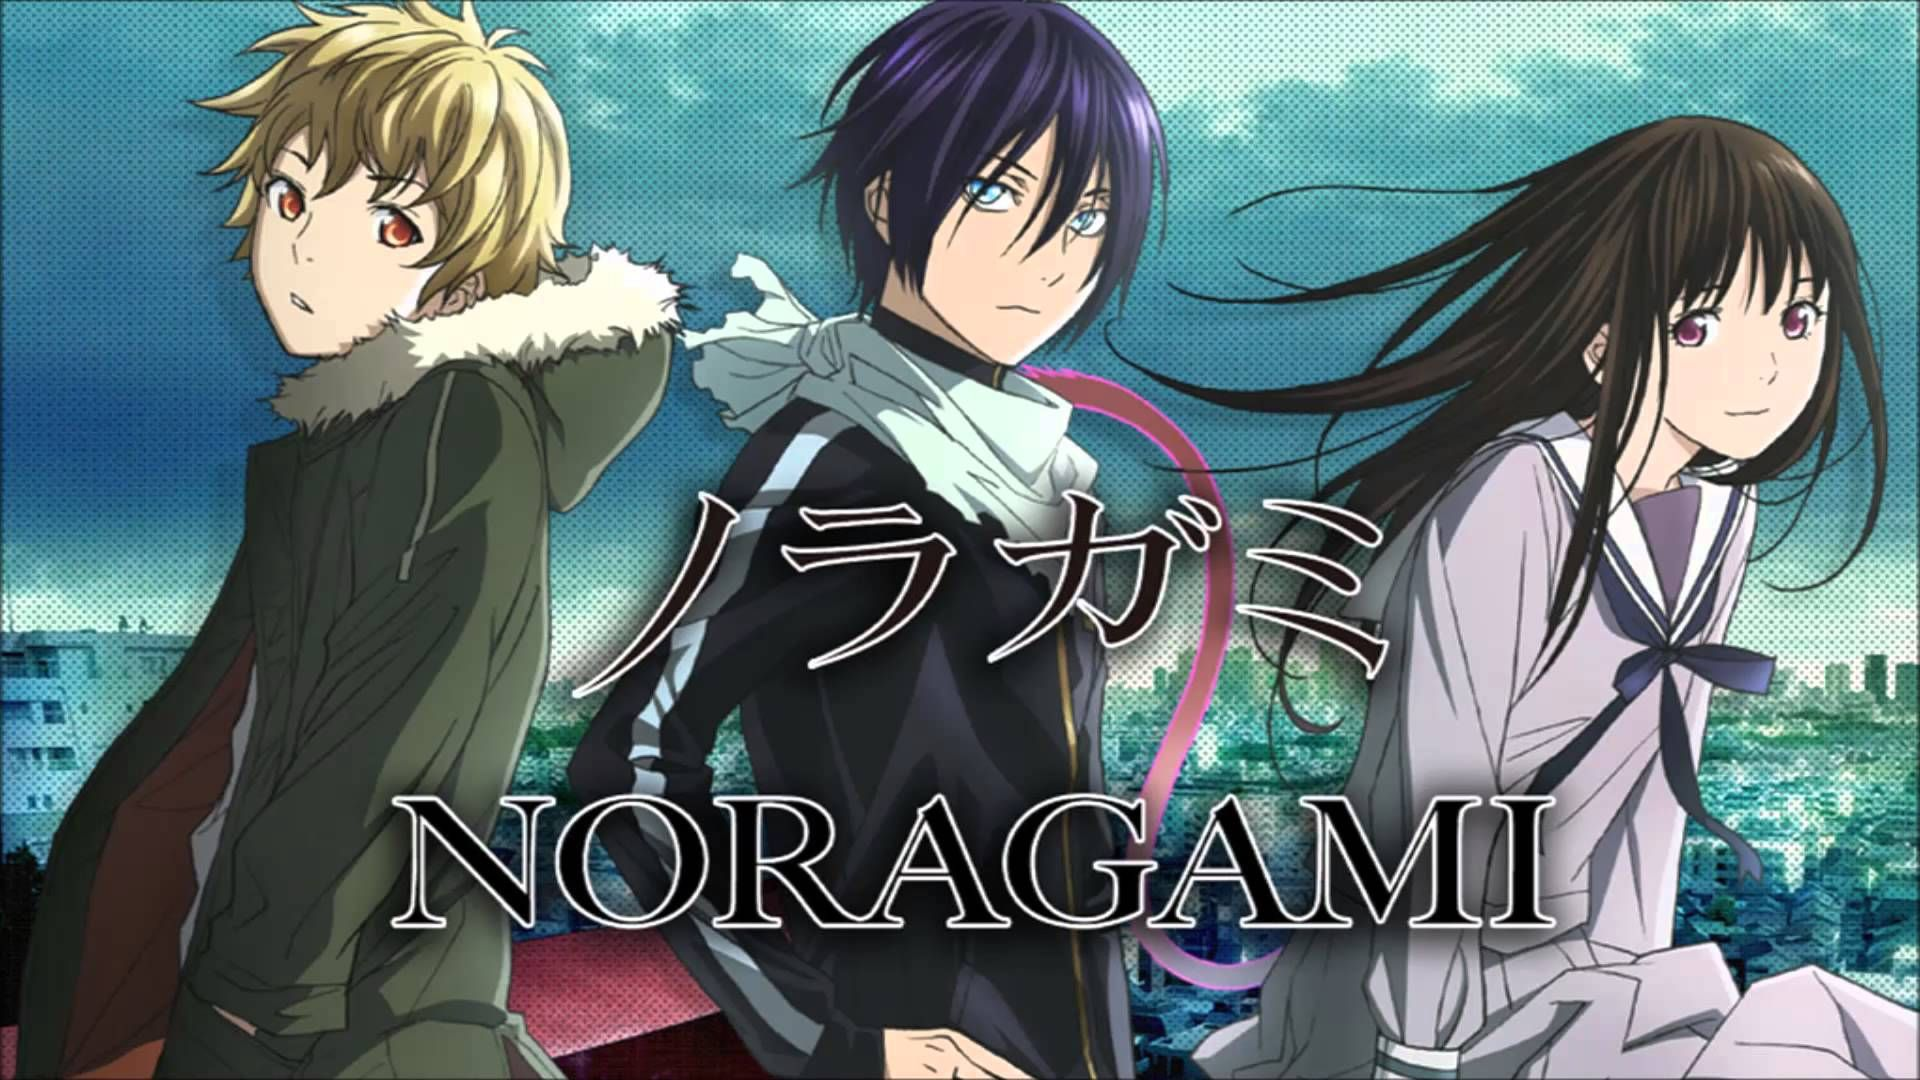 Noragami Anime Videos Are Added To Download Or Watch